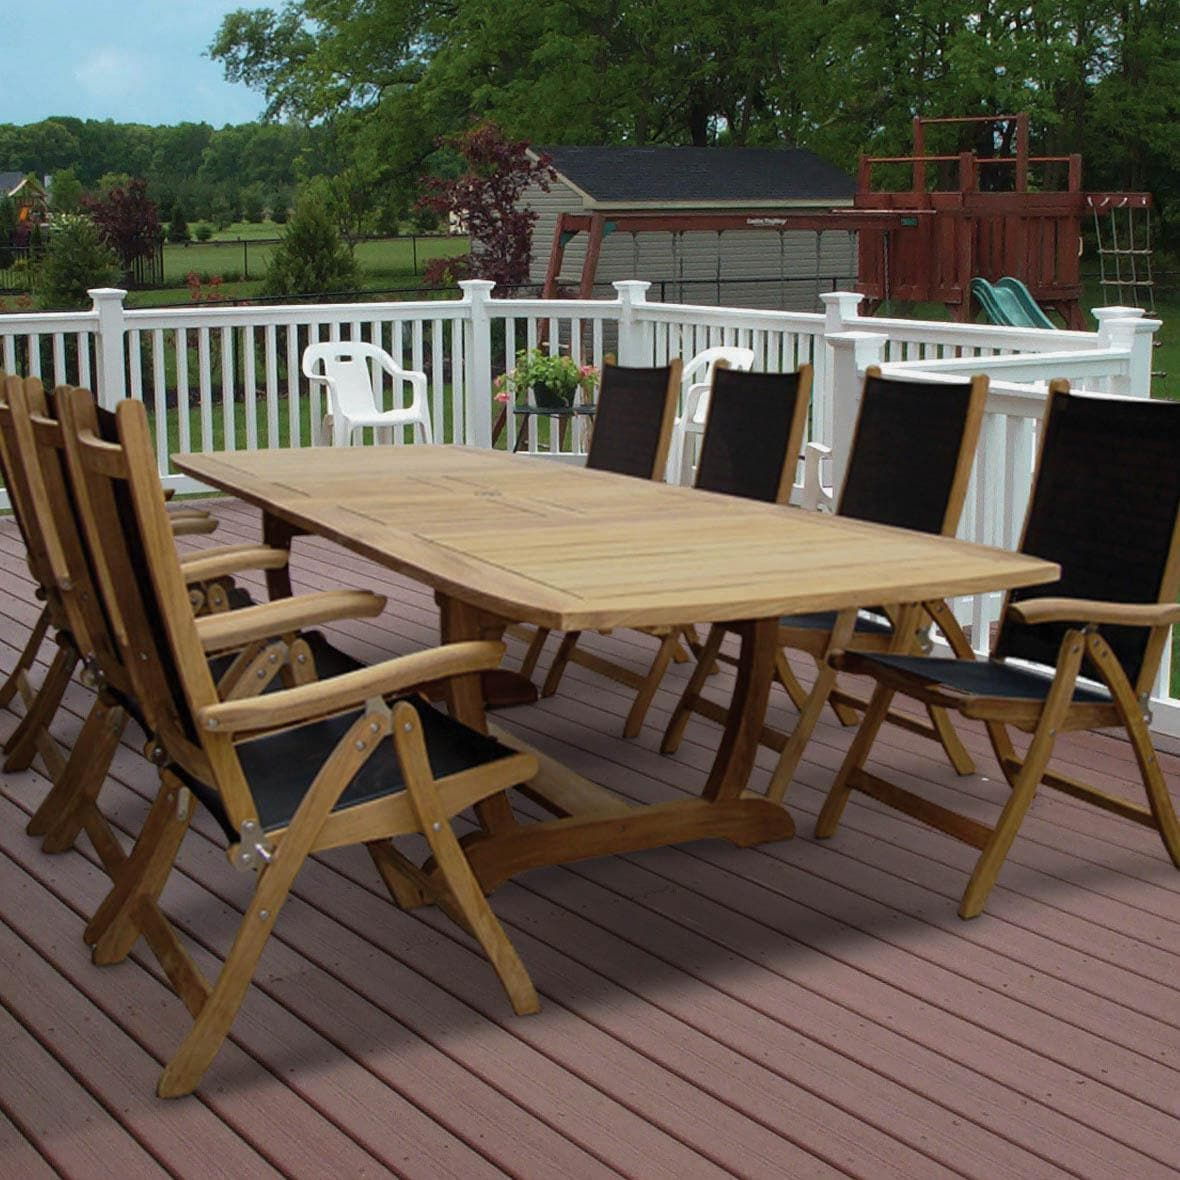 Royal Teak Collection Florida 8 Person Sling Dining Set W/ 118 Inch  Expansion Table U0026